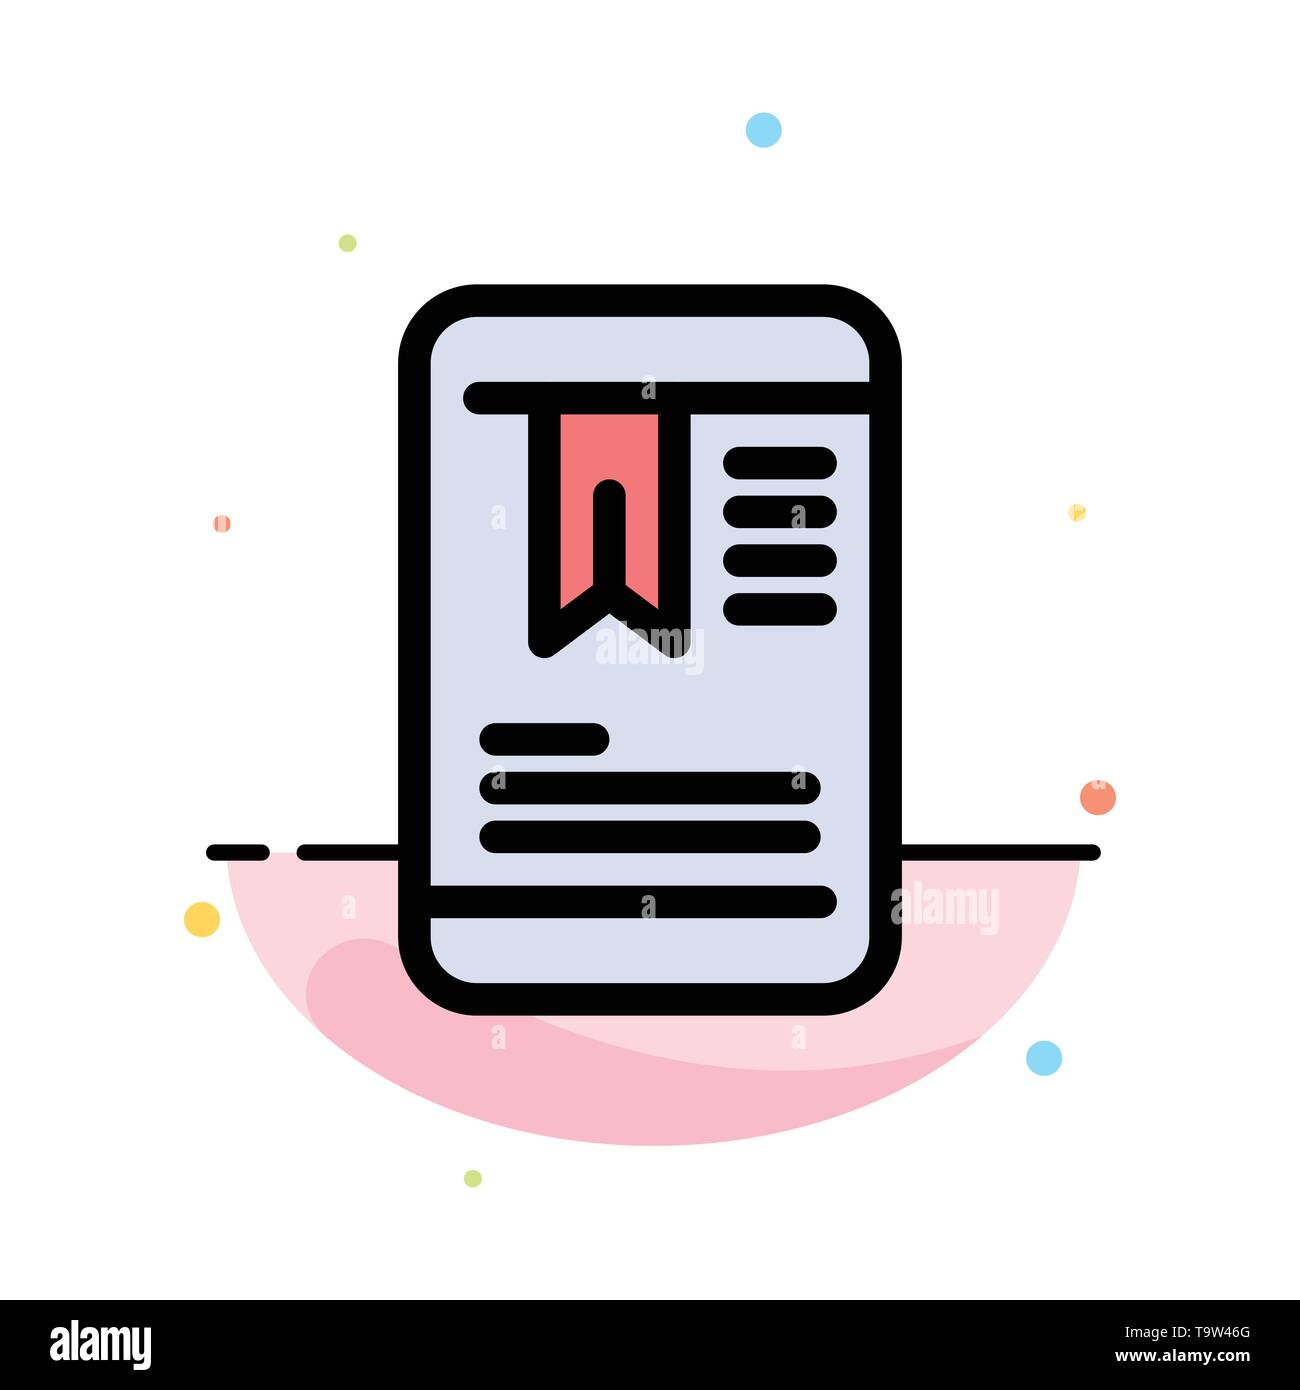 Mobile, Tag, OnEducation Abstract Flat Color Icon Template - Stock Image